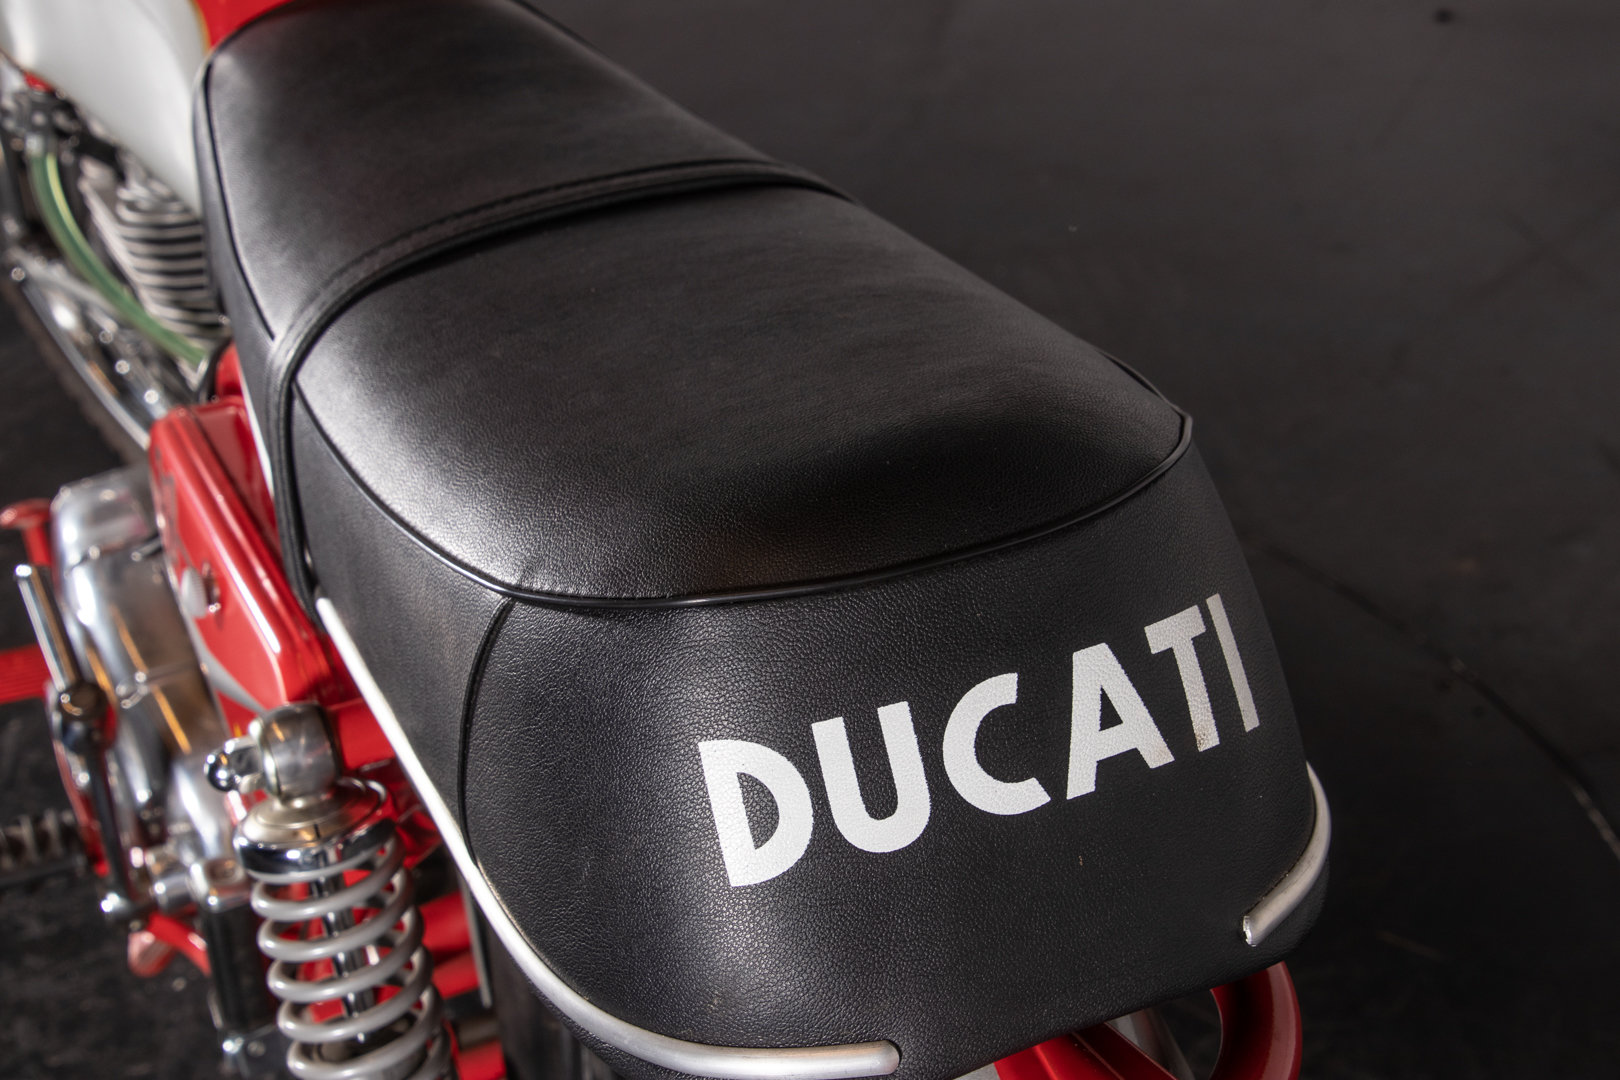 DUCATI - 250 - 1969 For Sale (picture 5 of 6)